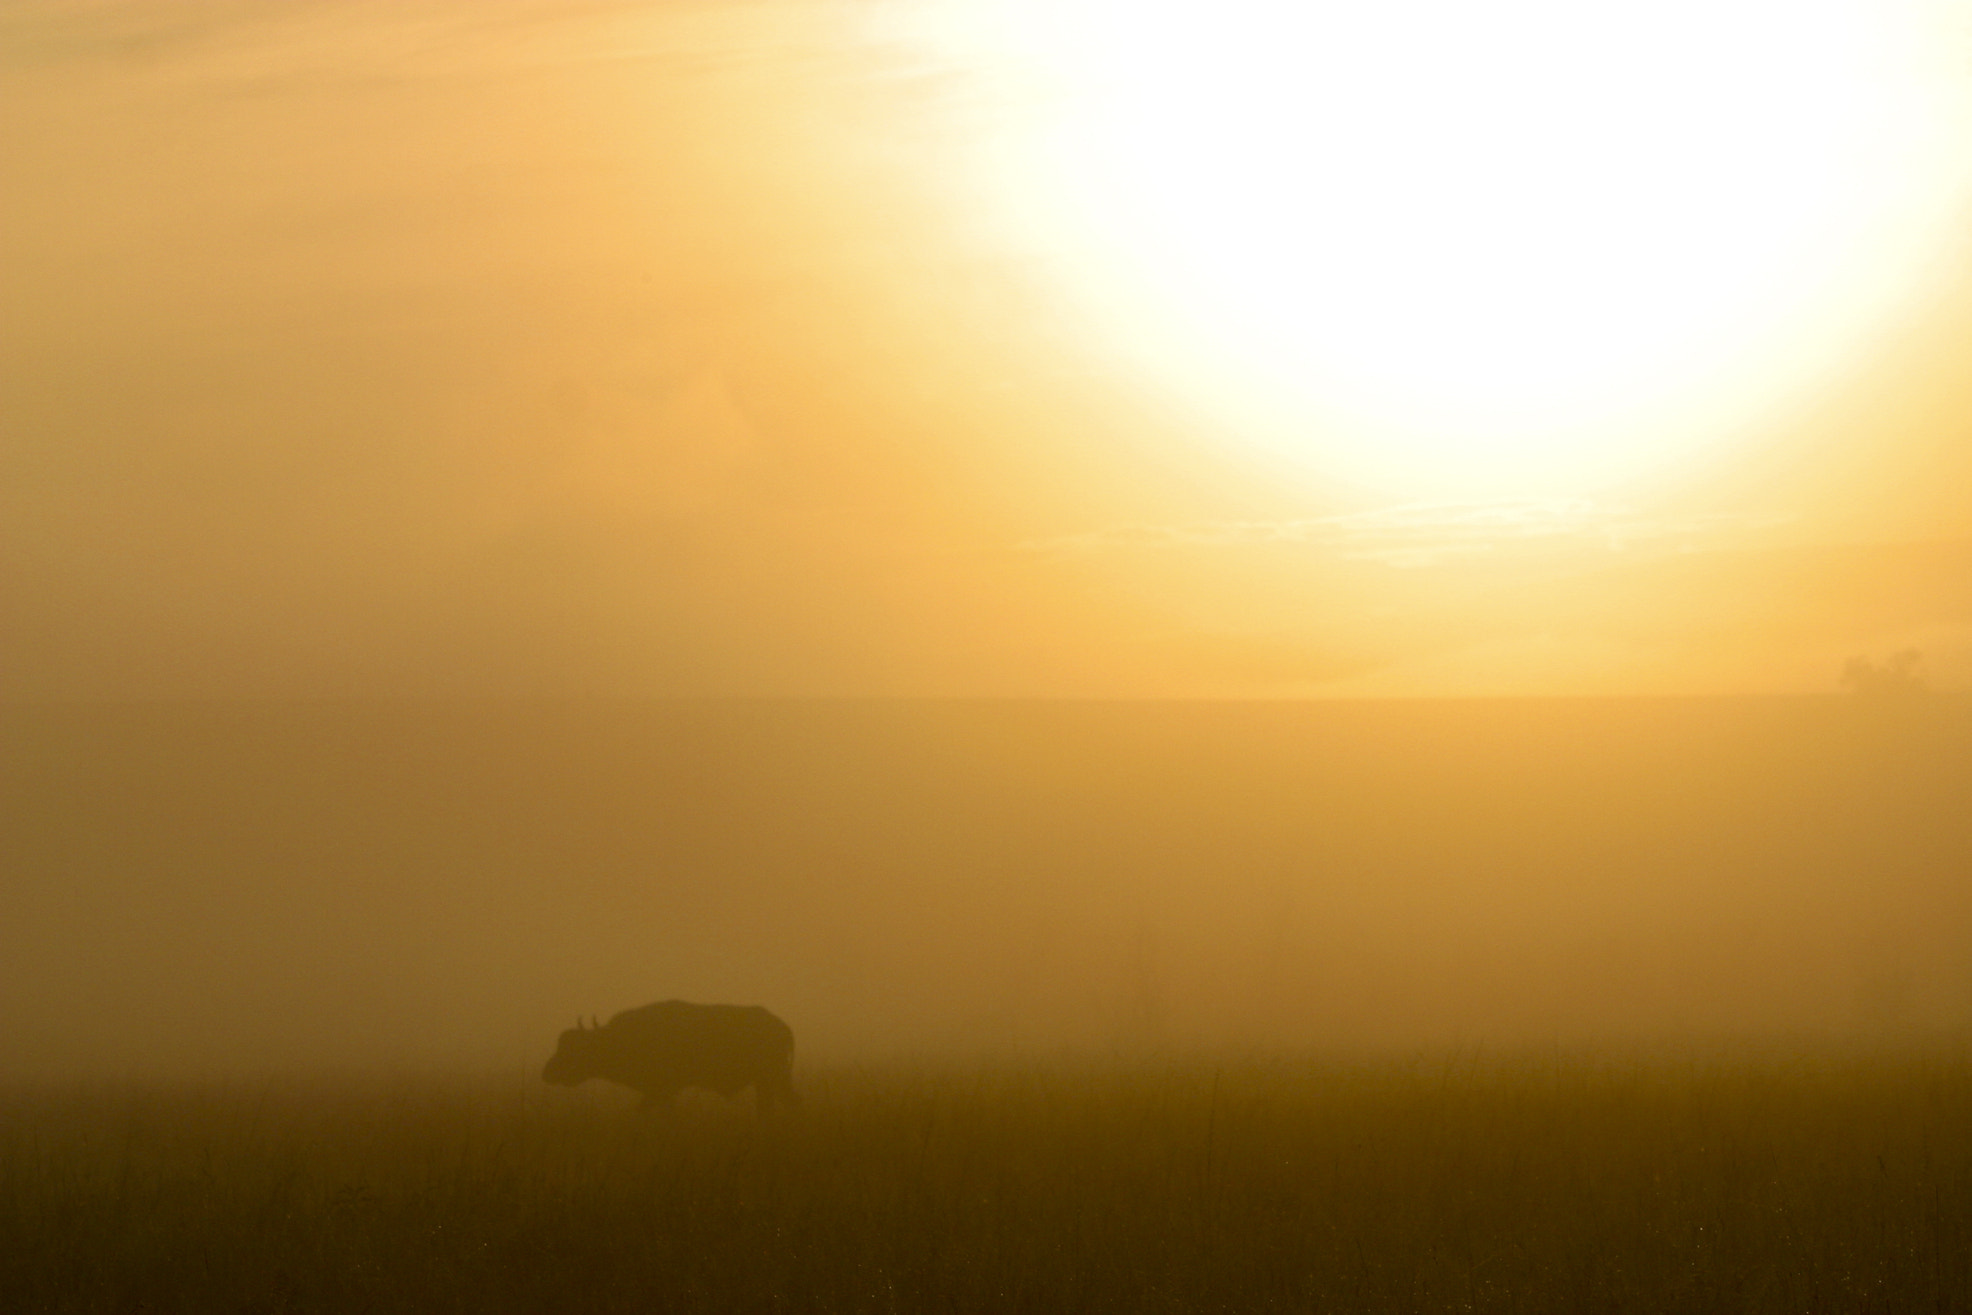 Photograph Beginning with a buffalo by Tim Allen-Rowlandson on 500px